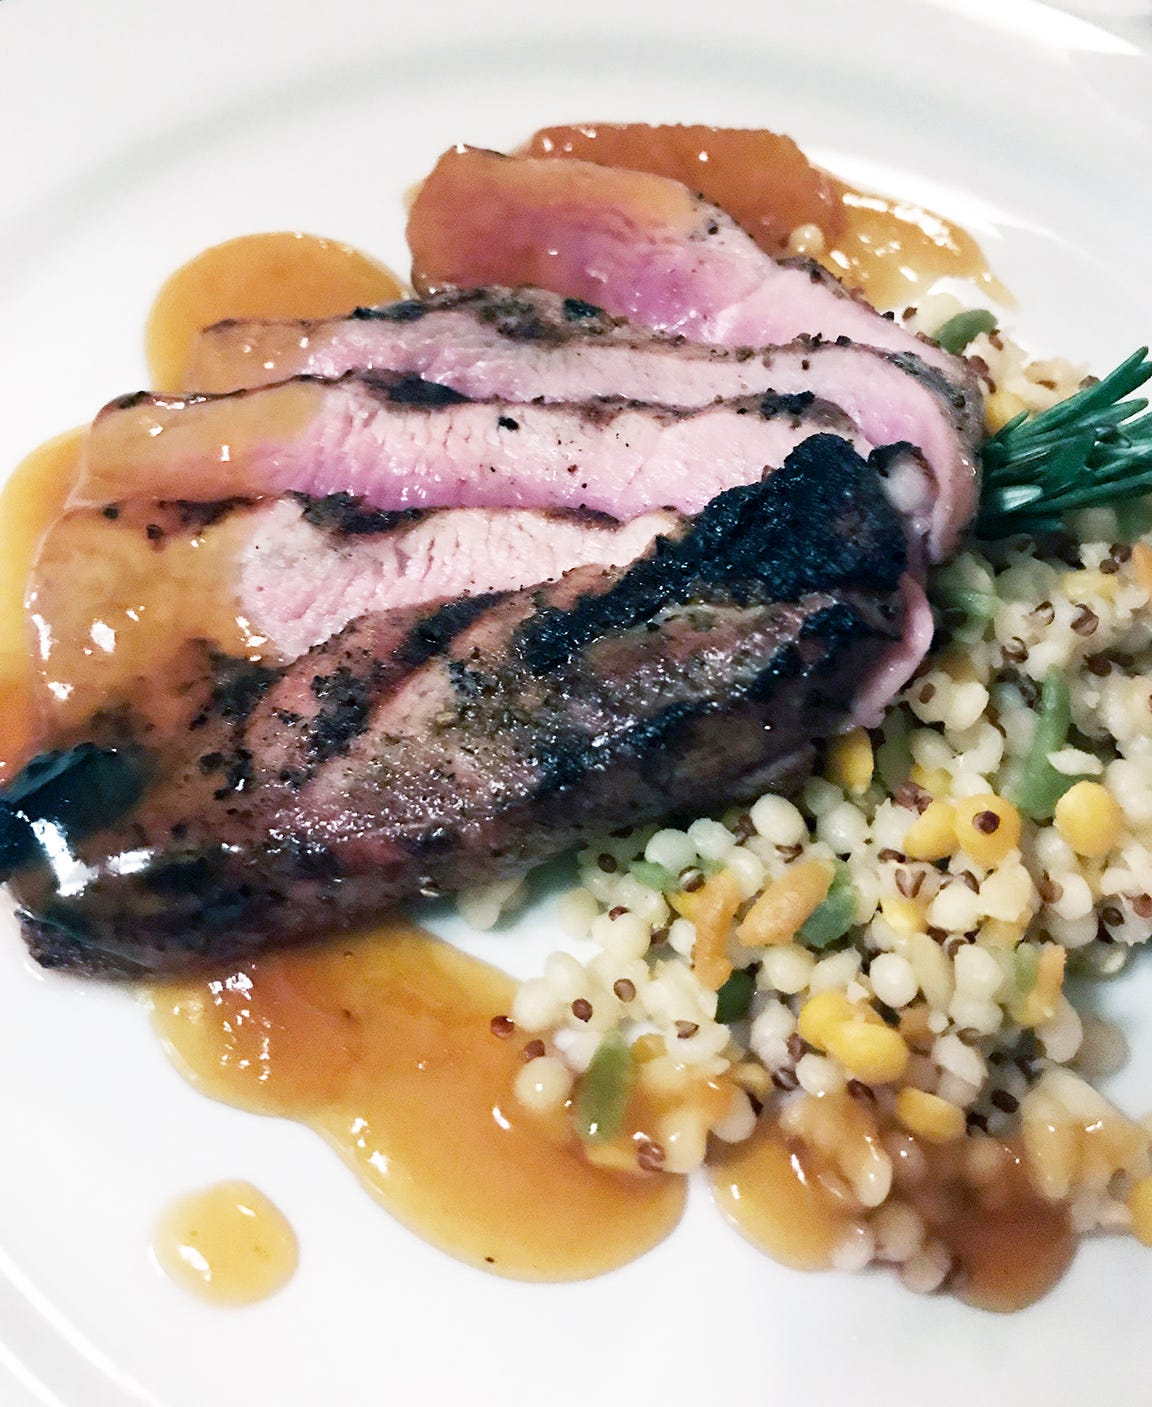 At Sebastian's, 6025 Douglas Ave., Caledonia,  rosy grilled duck breast was sliced and served with orange gastrique and a pasta-quinoa pilaf.